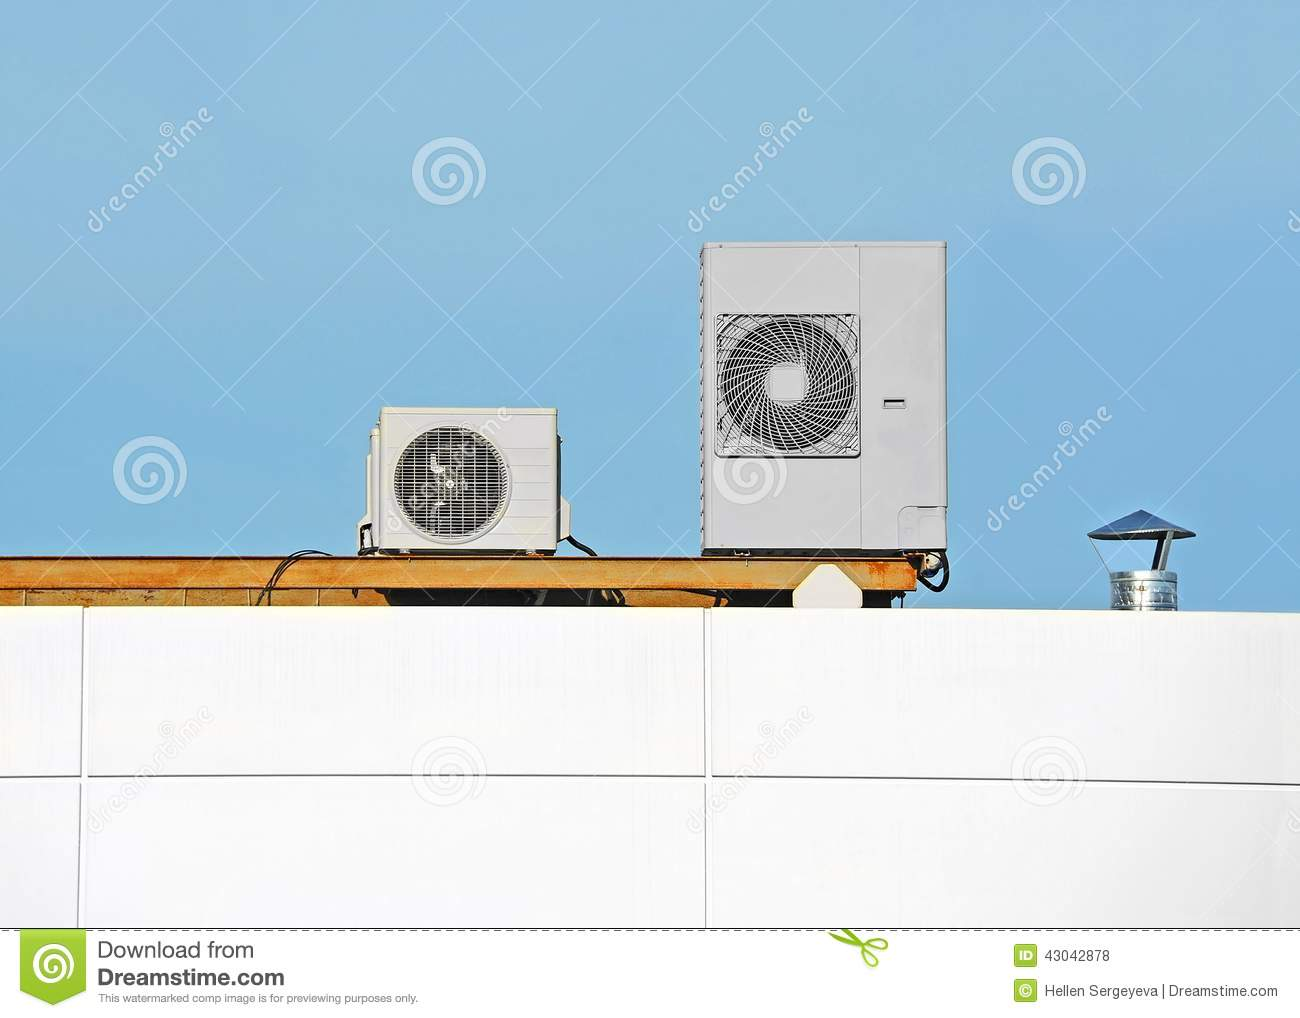 industrial ventilation system air conditioning systems roof 43042878  #A26D29